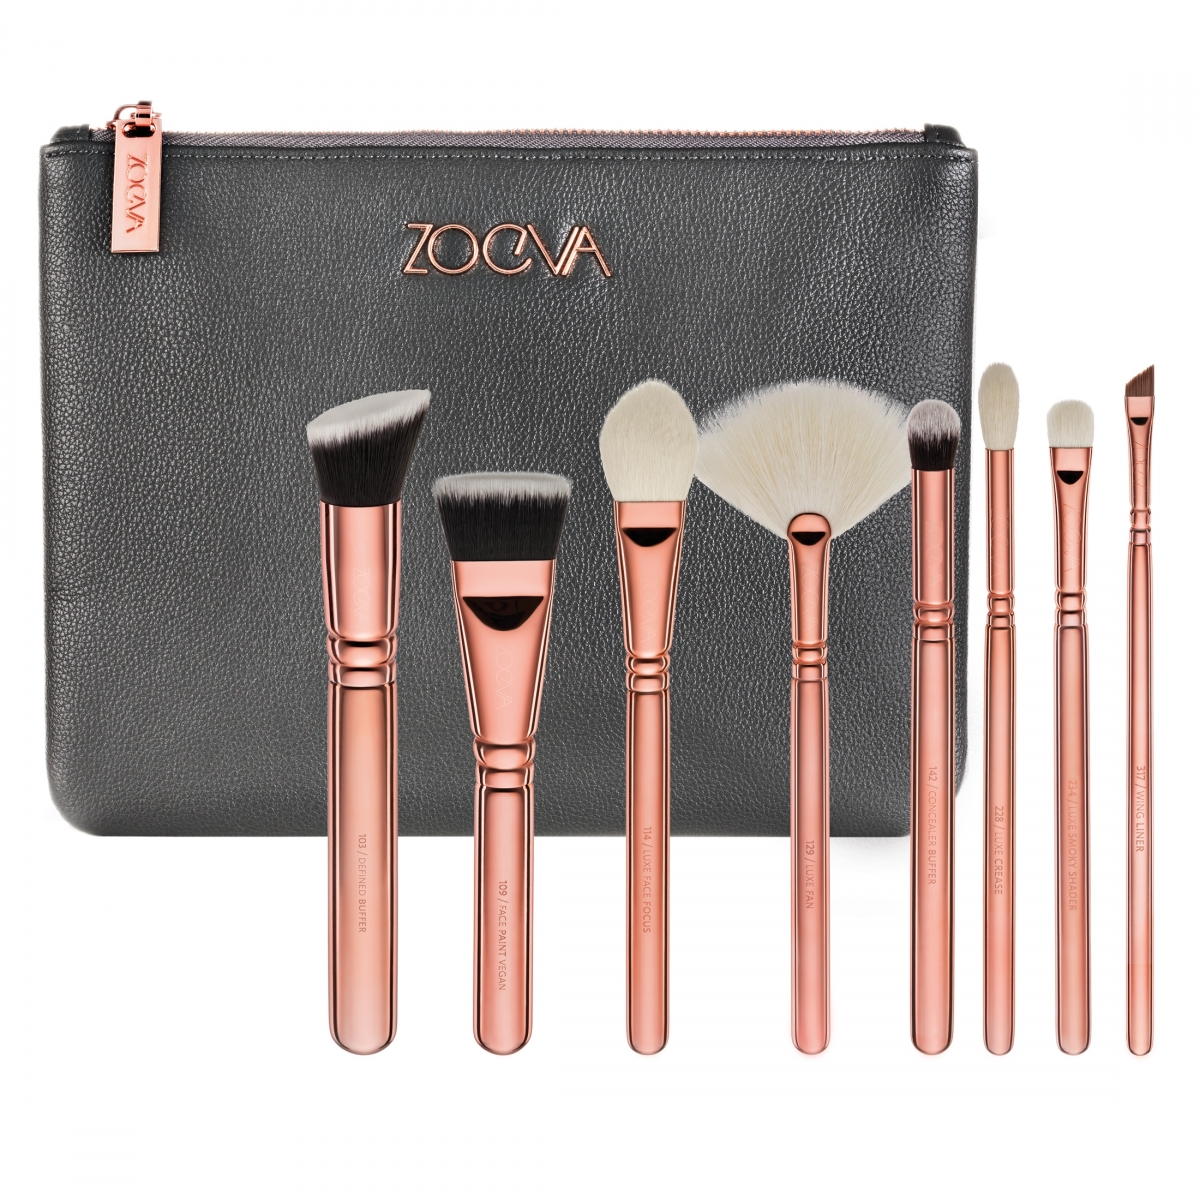 Набор кистей Zoeva Rose Golden Luxury Set Vol.3